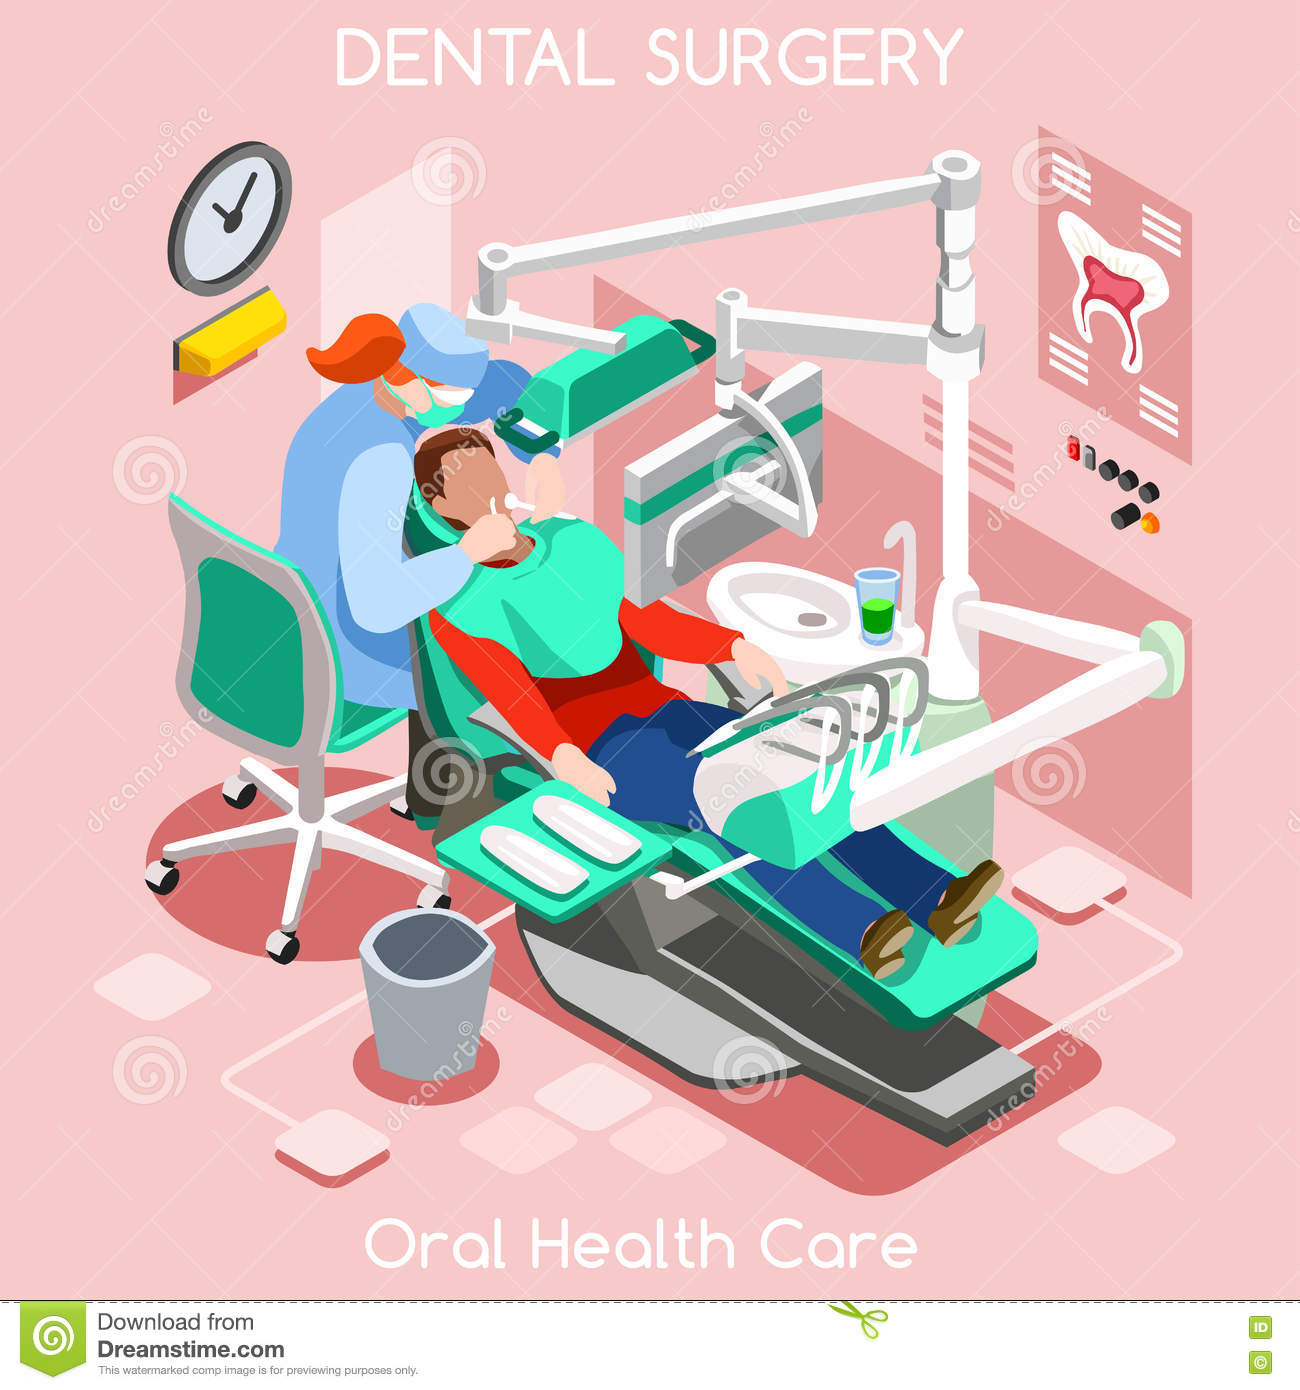 Dental implant teeth hygiene and whitening oral surgery center dentist and patient.